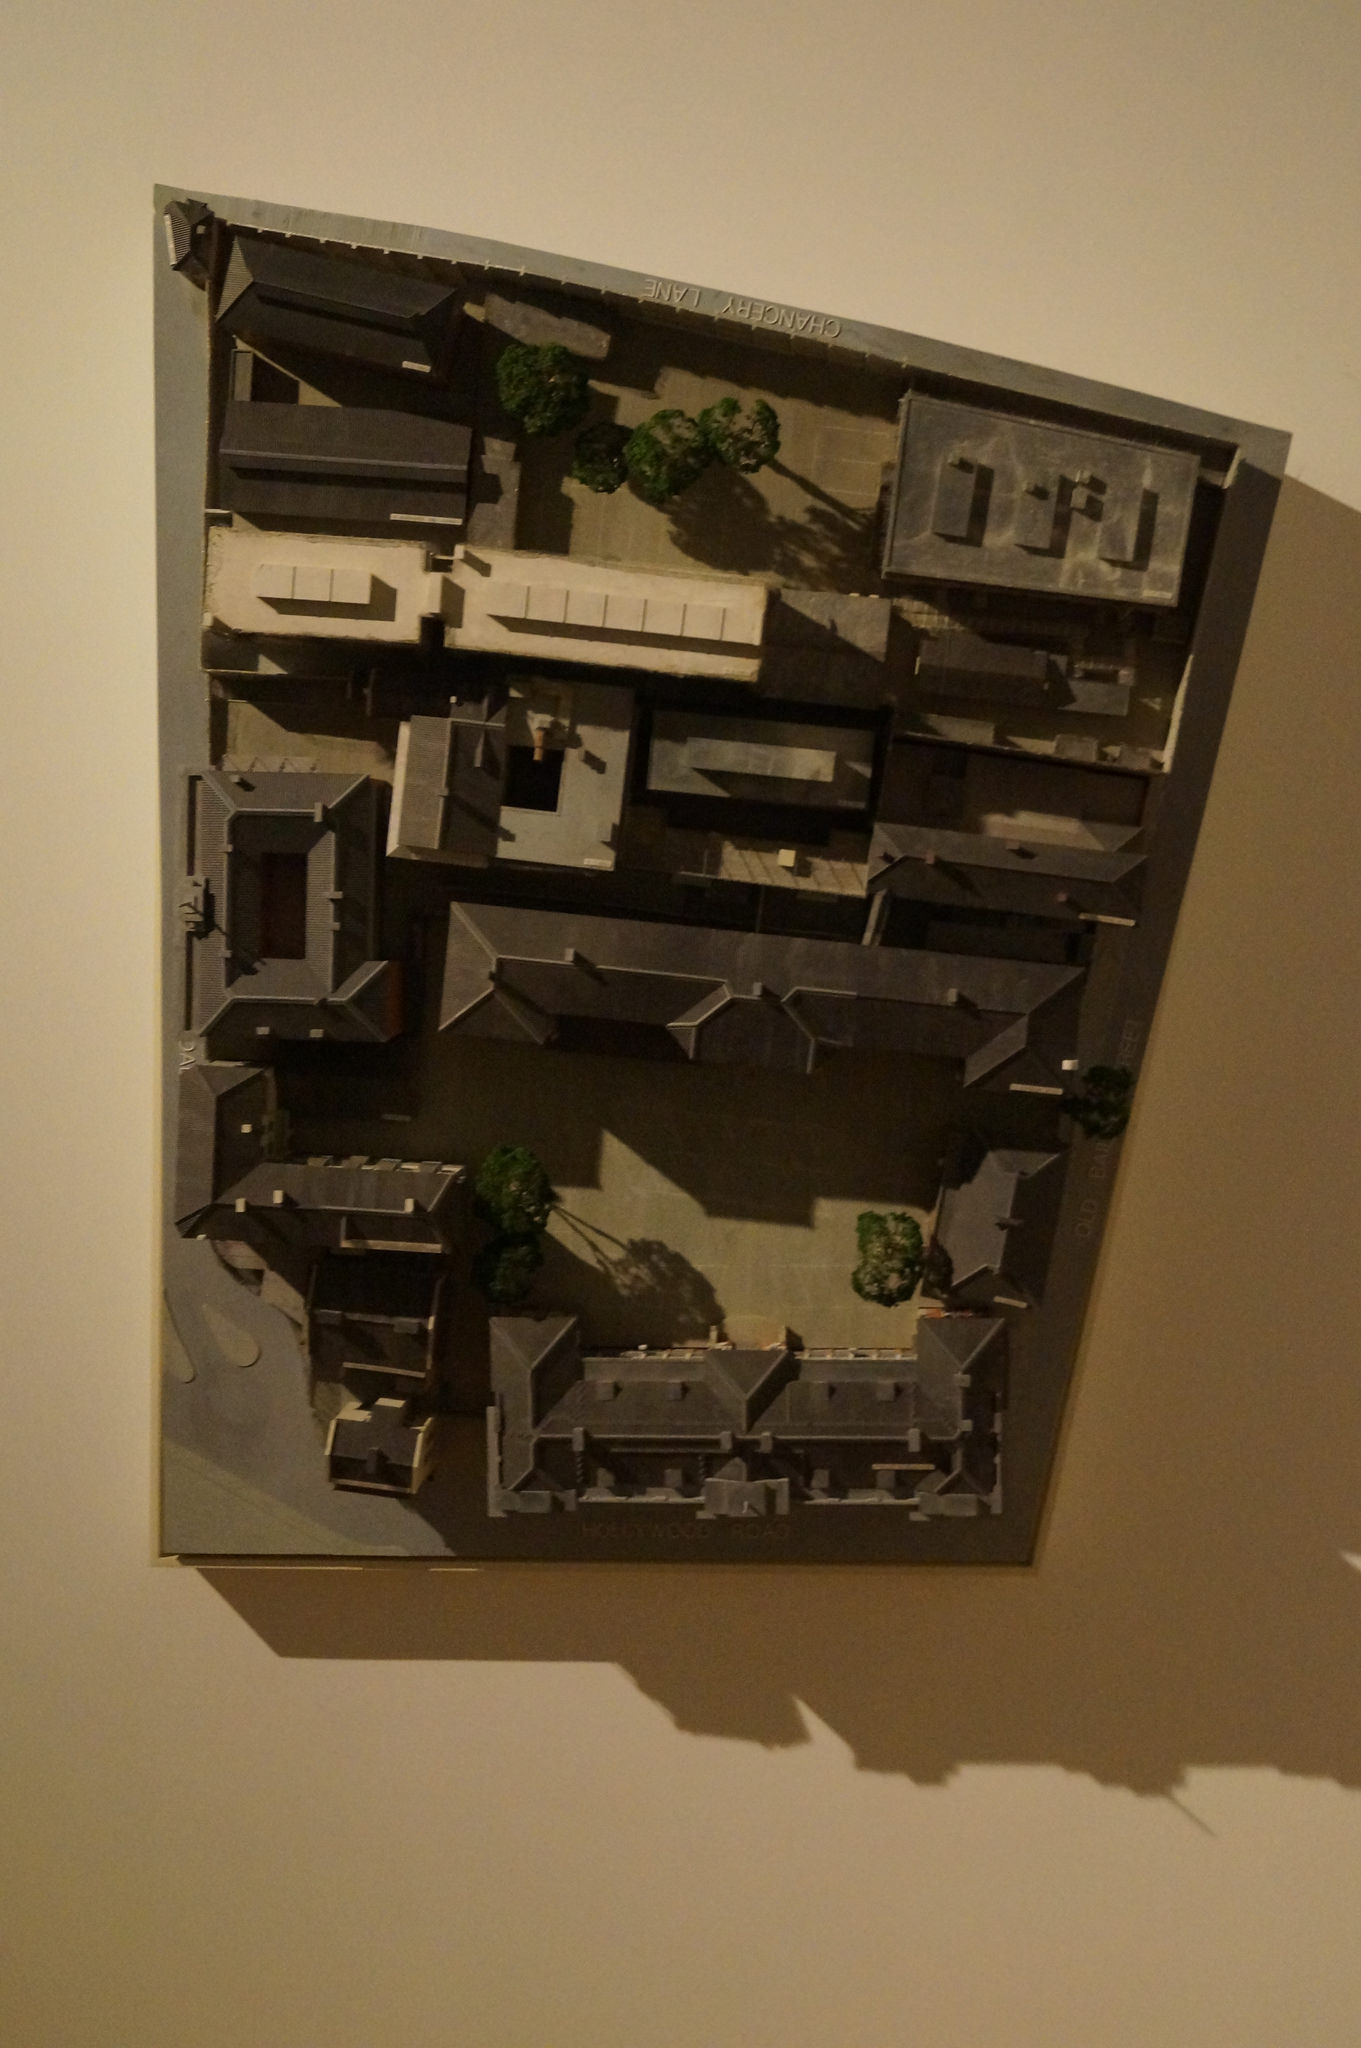 3D Model Of Old Central Police Station · Tai Kwun Digital